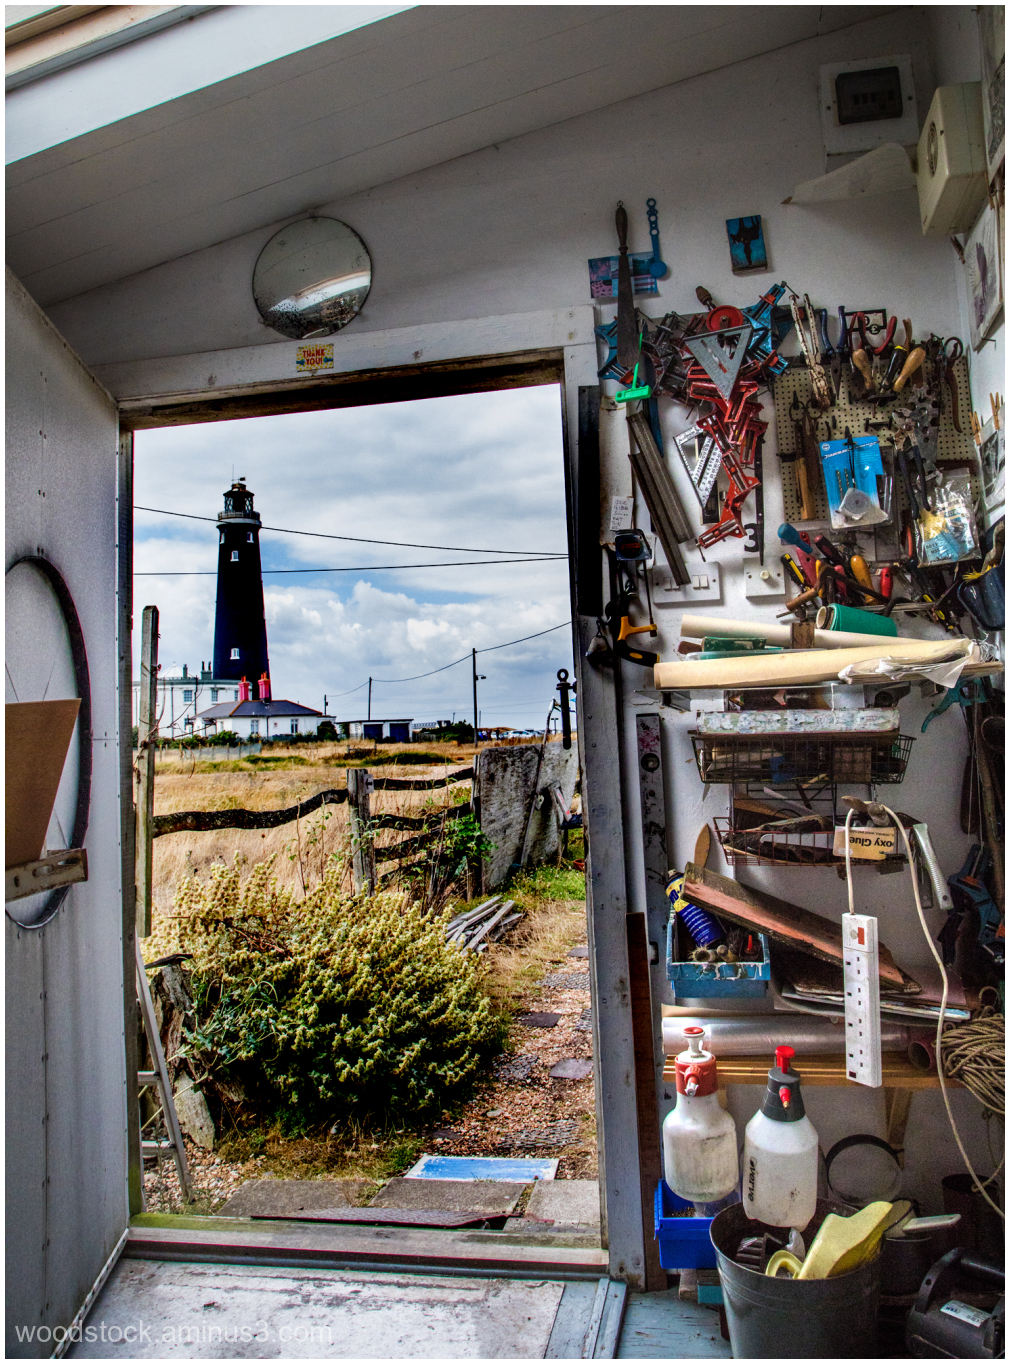 The Artist's Studio at Dungeness